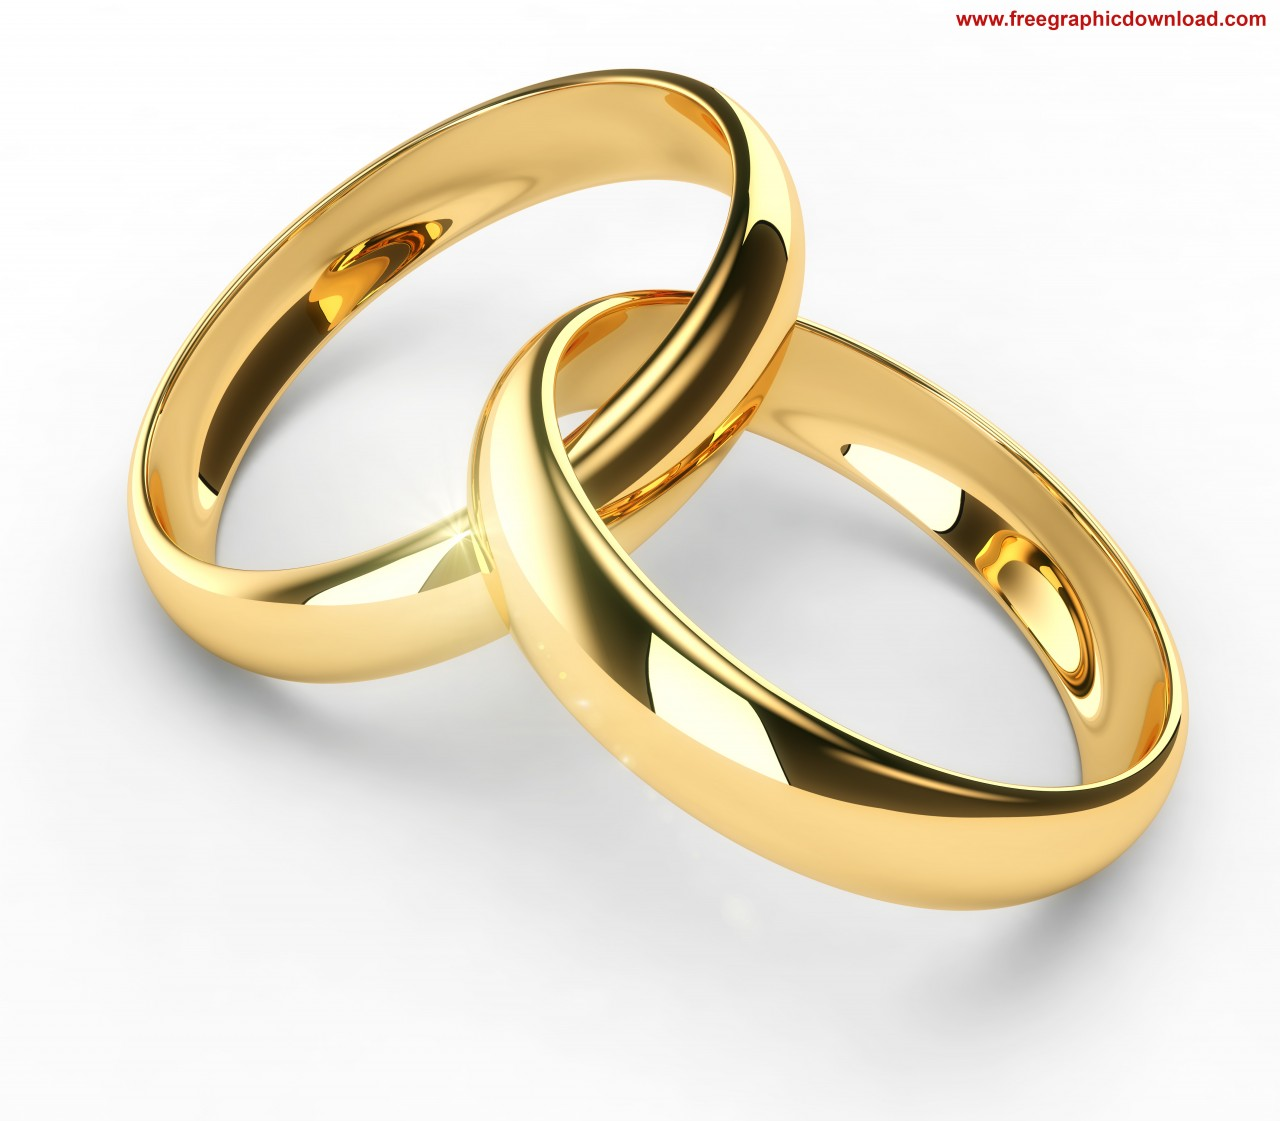 Image Picturesofweddingrings1jpg Superpower Wiki FANDOM